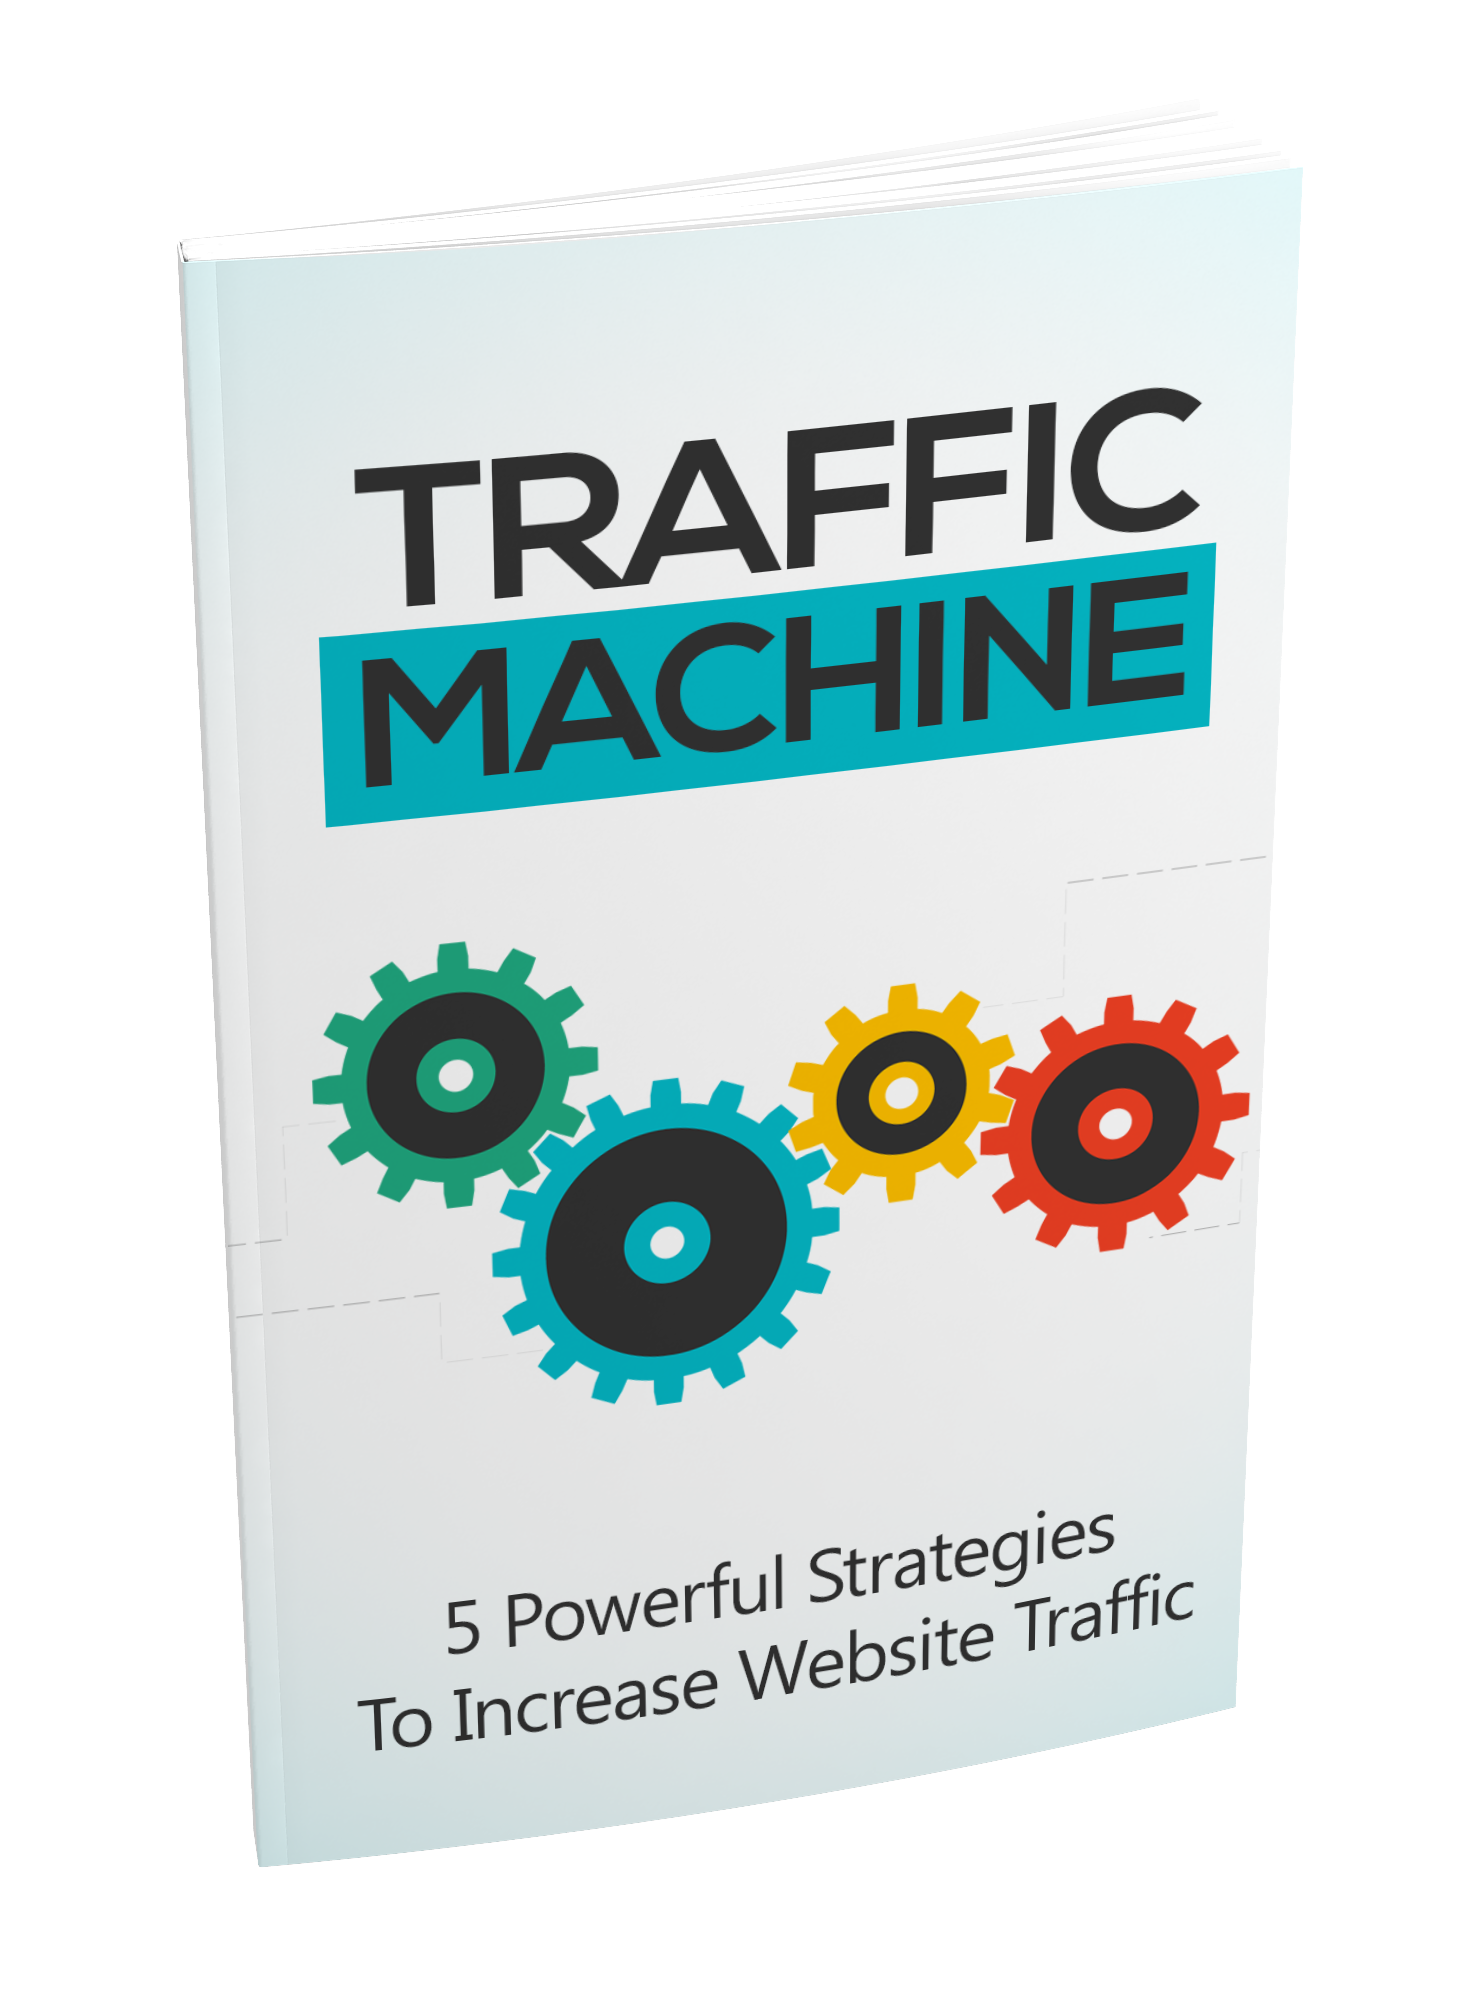 Traffic Machine for generating more traffic to your site